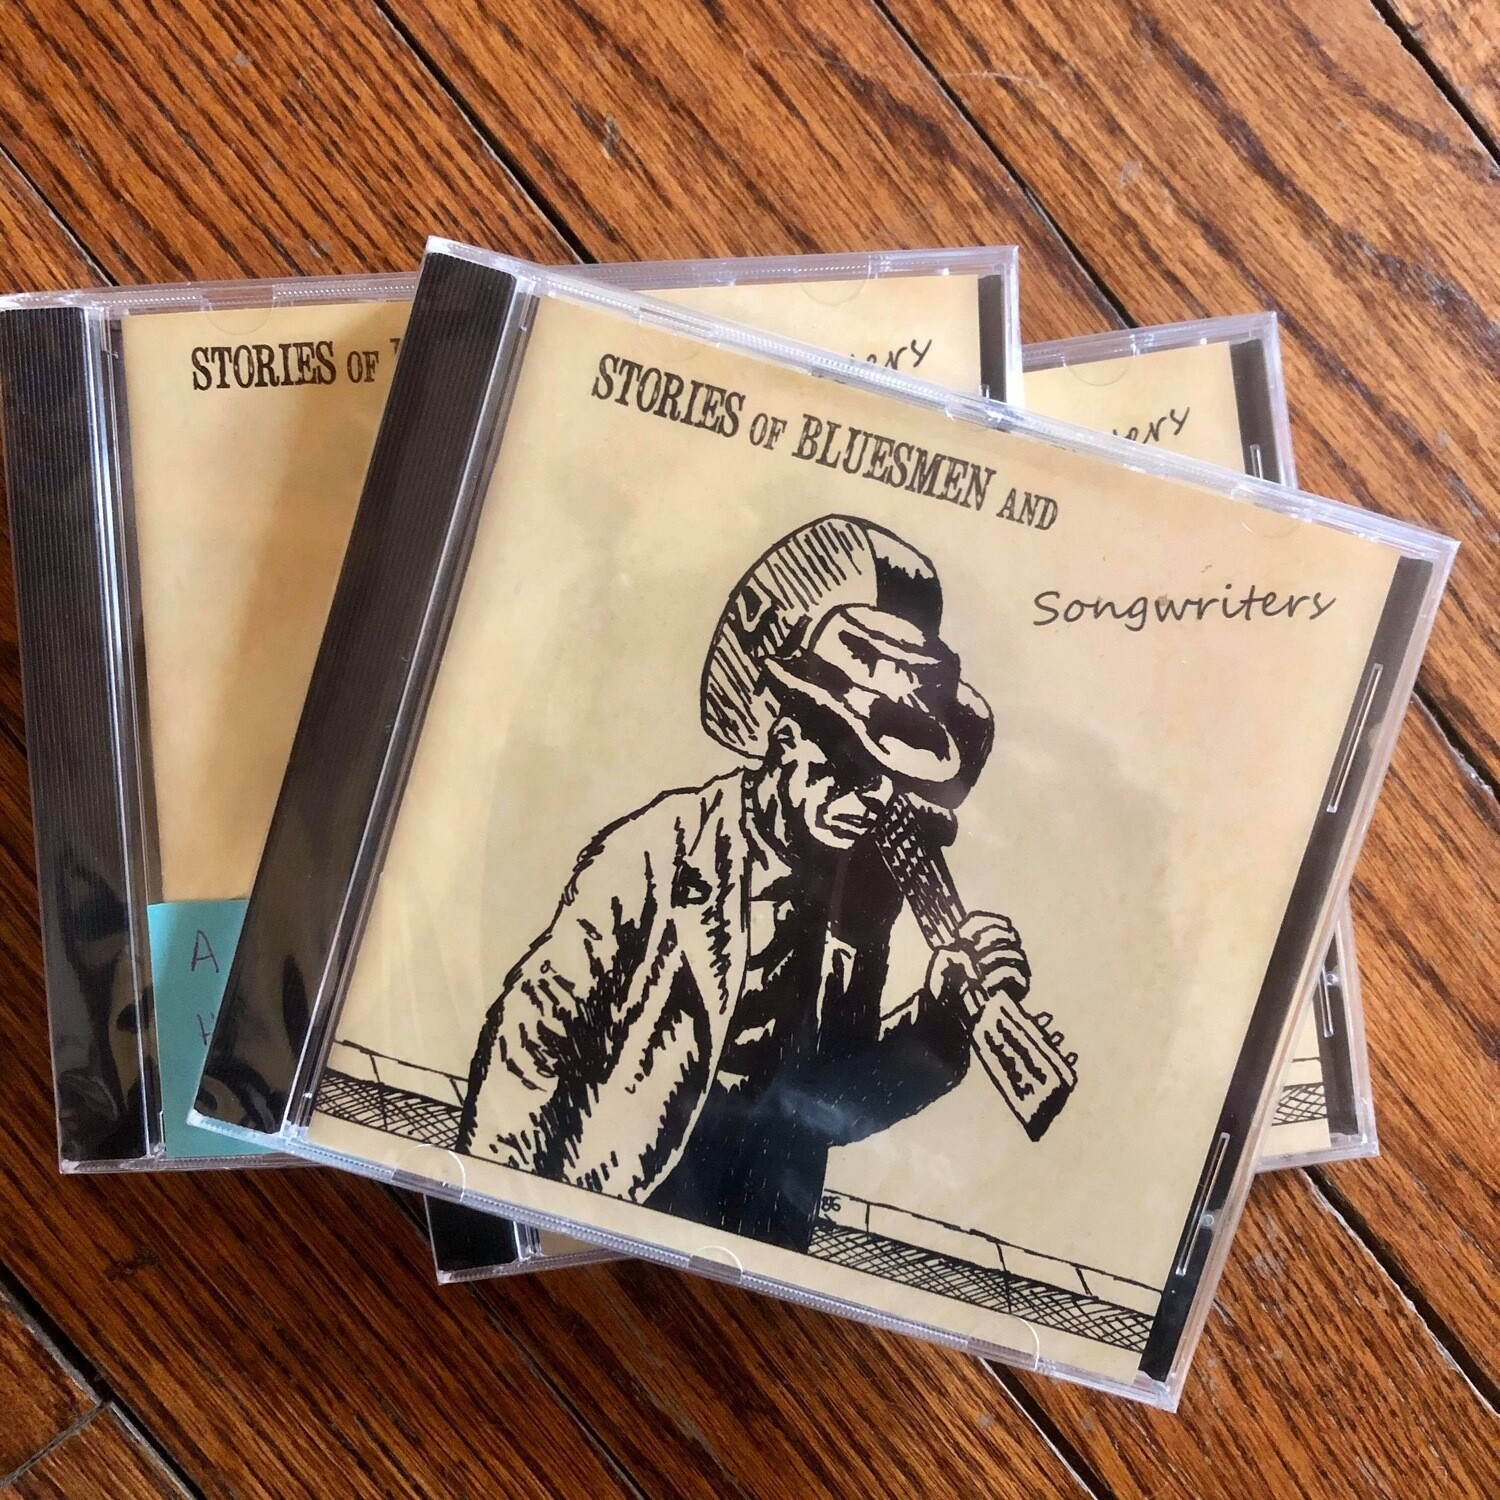 Stories of Bluesmen and Songwriters CD 1064